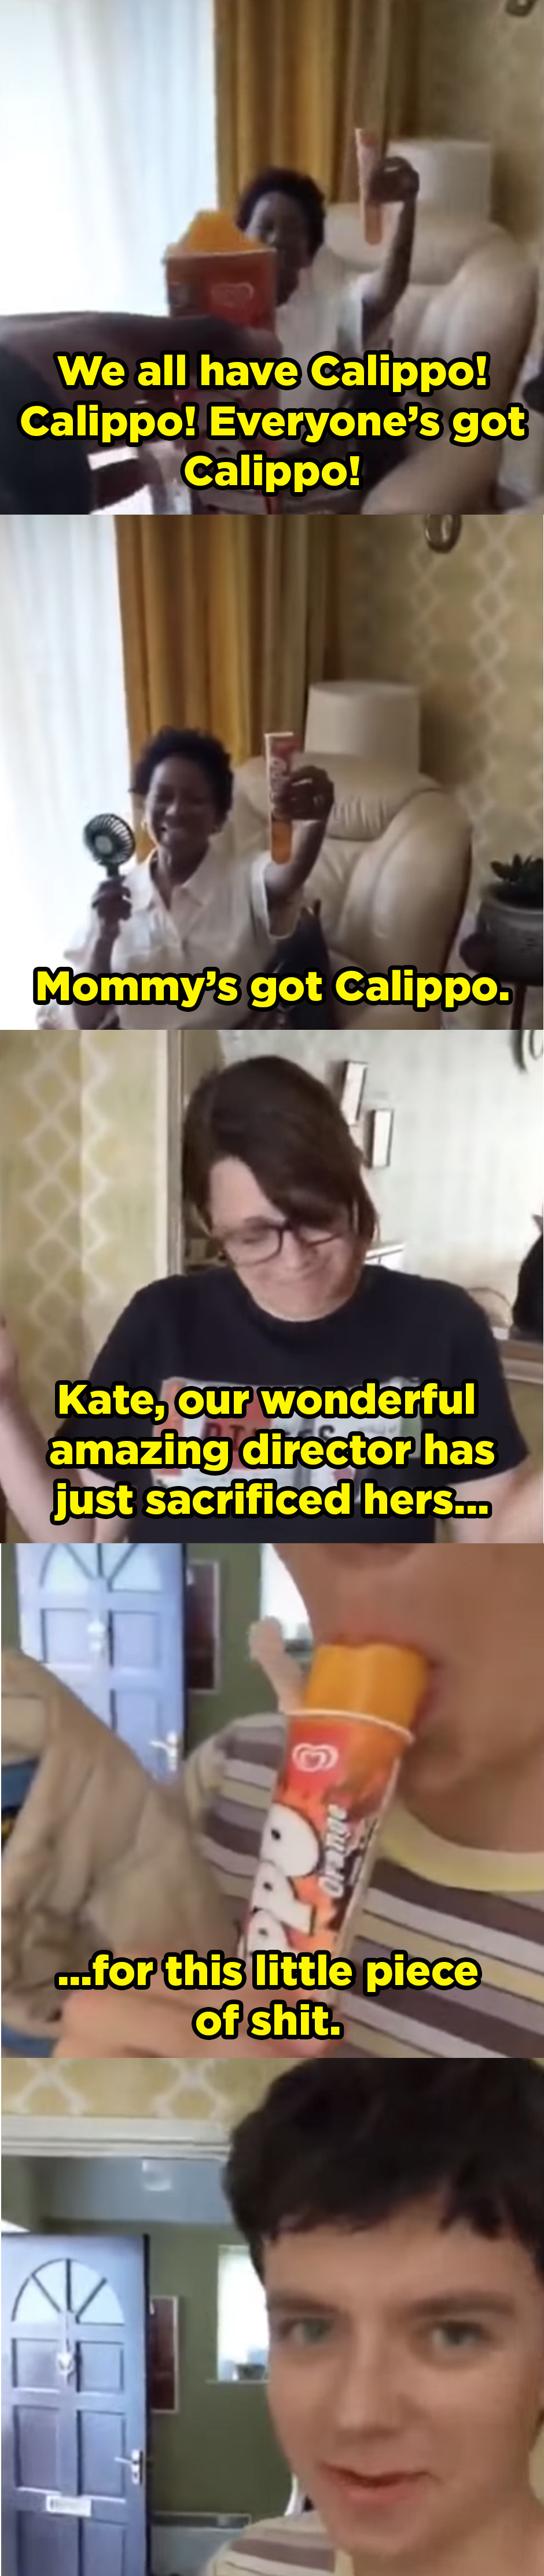 Ncuti showing off that he and his onscreen mom Doreene Blackstock have popsicles, then he says that their great director Kate Herron sacrificed hers for Asa.